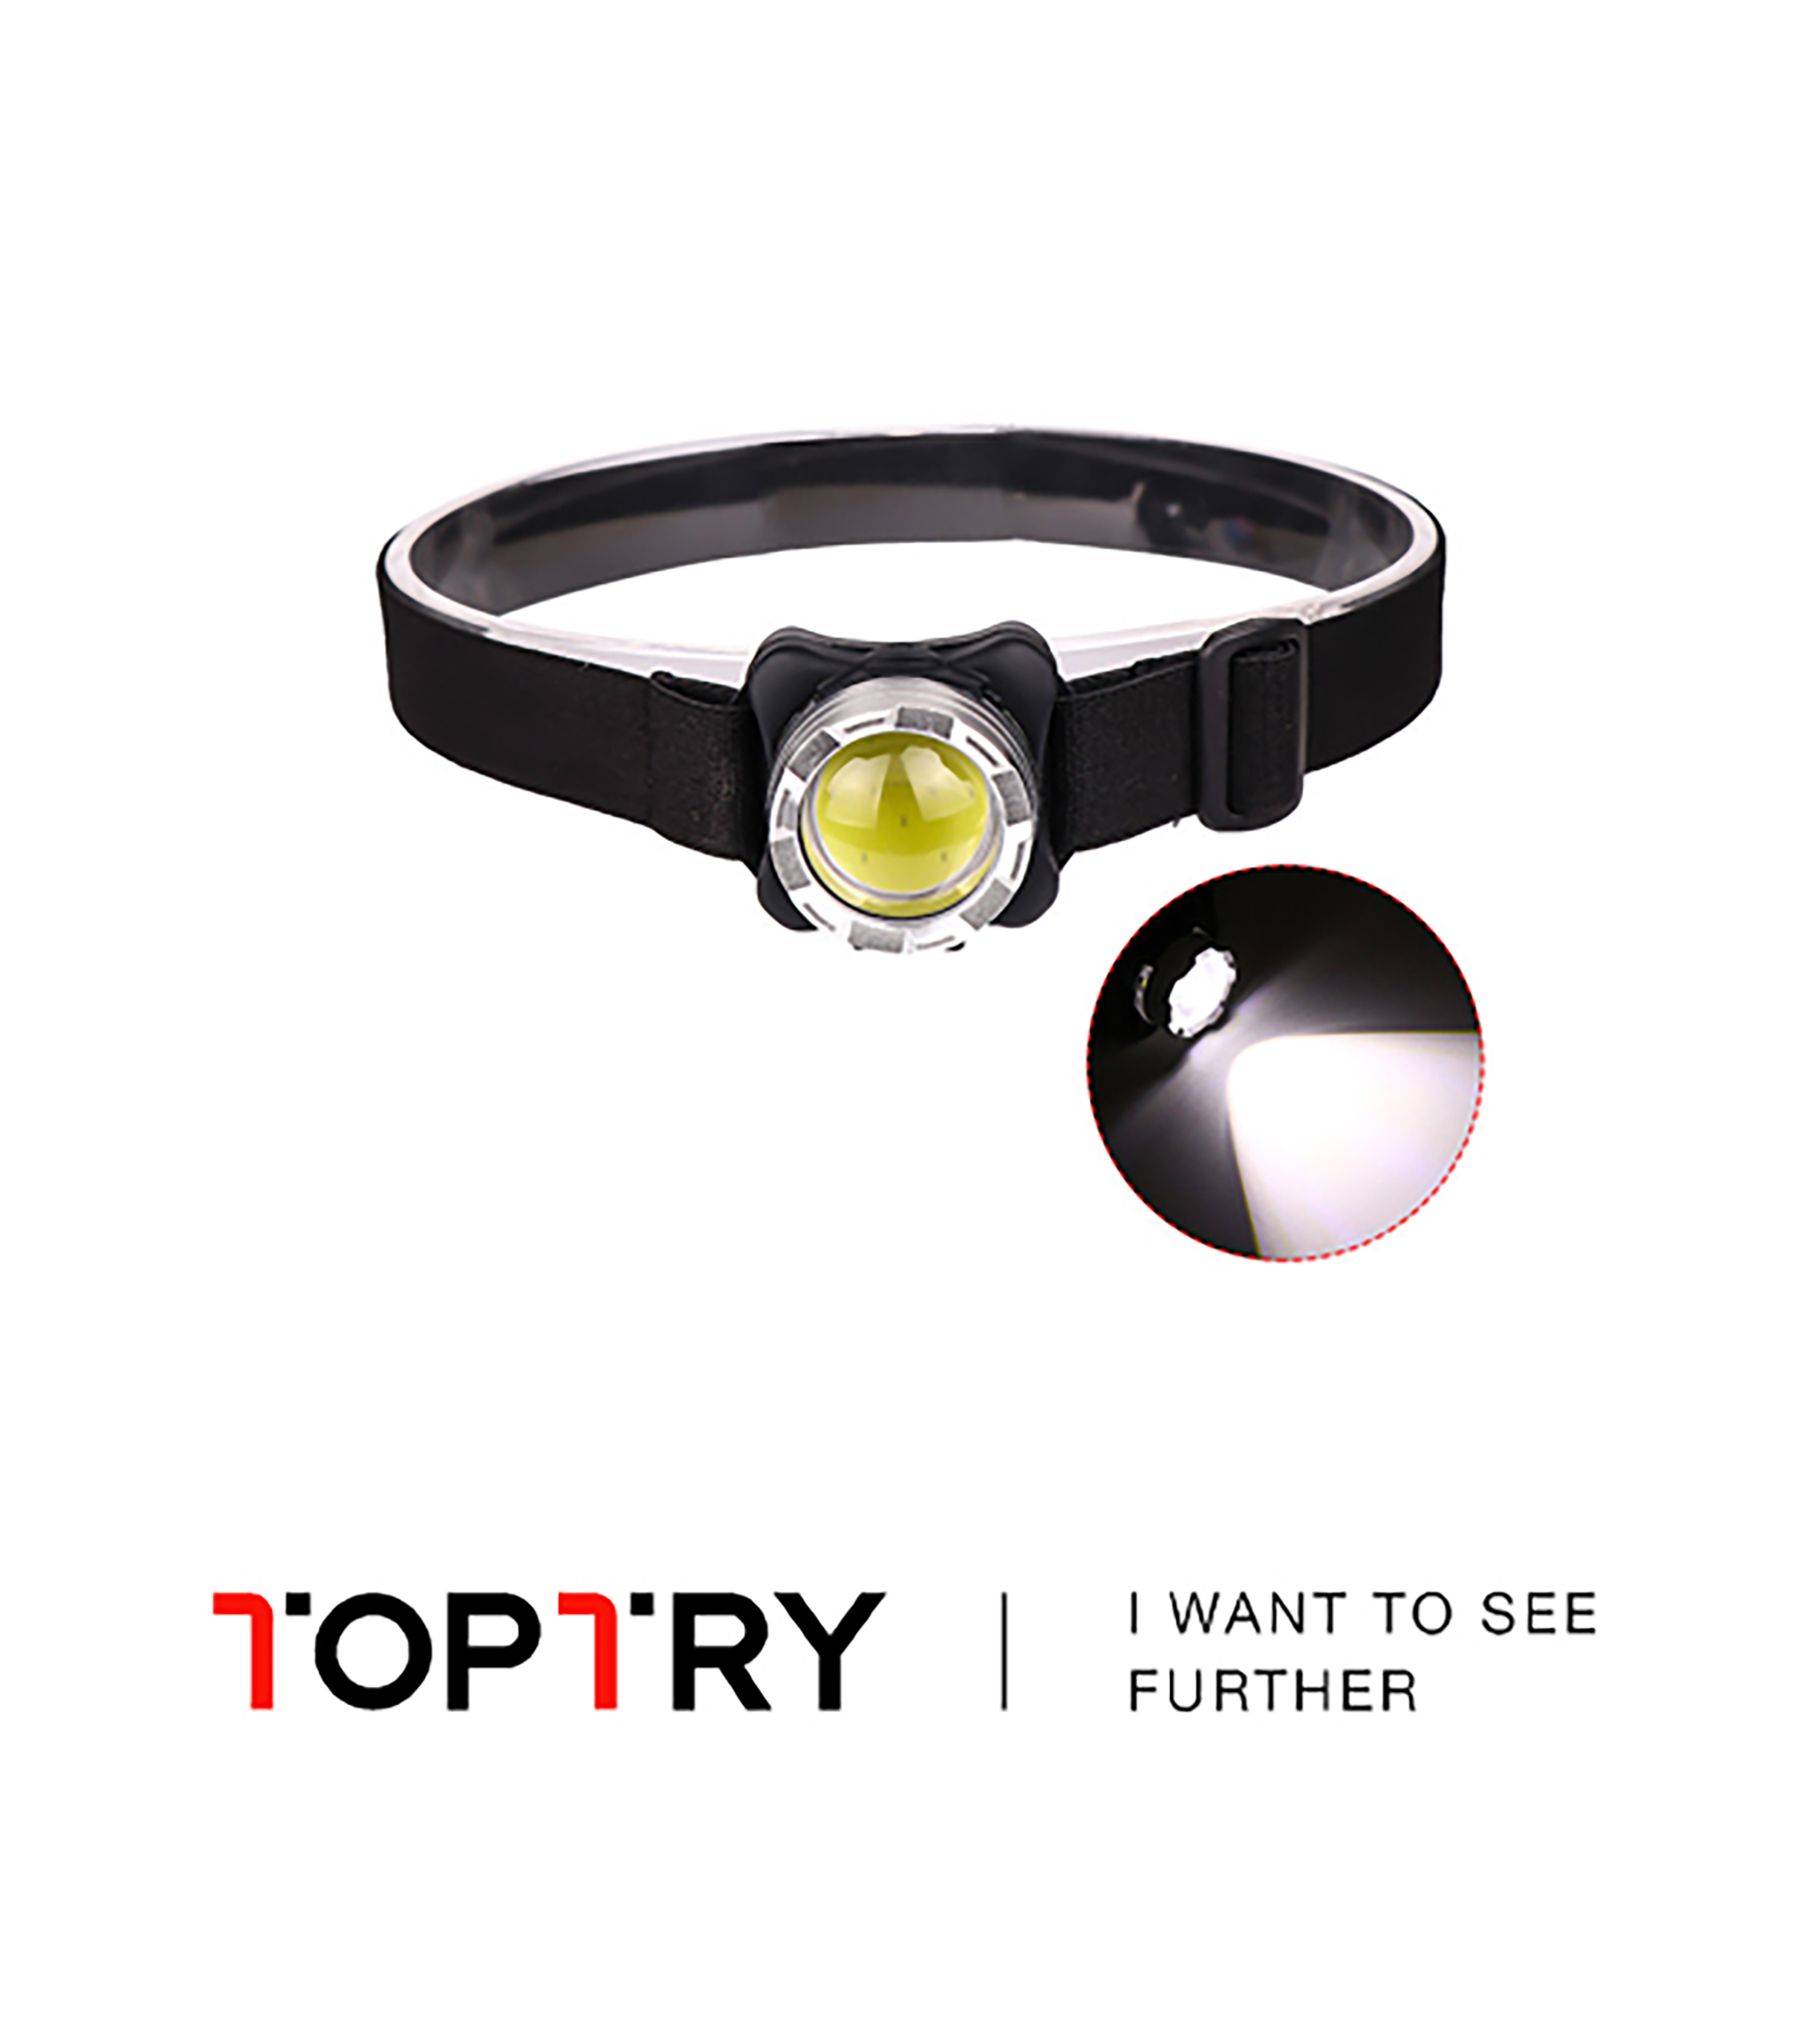 Rechargeable Work Headlights, LED Work Lights 2 Kinds Of Lighting Modes, With Removable Headlights, For Adventure Camping